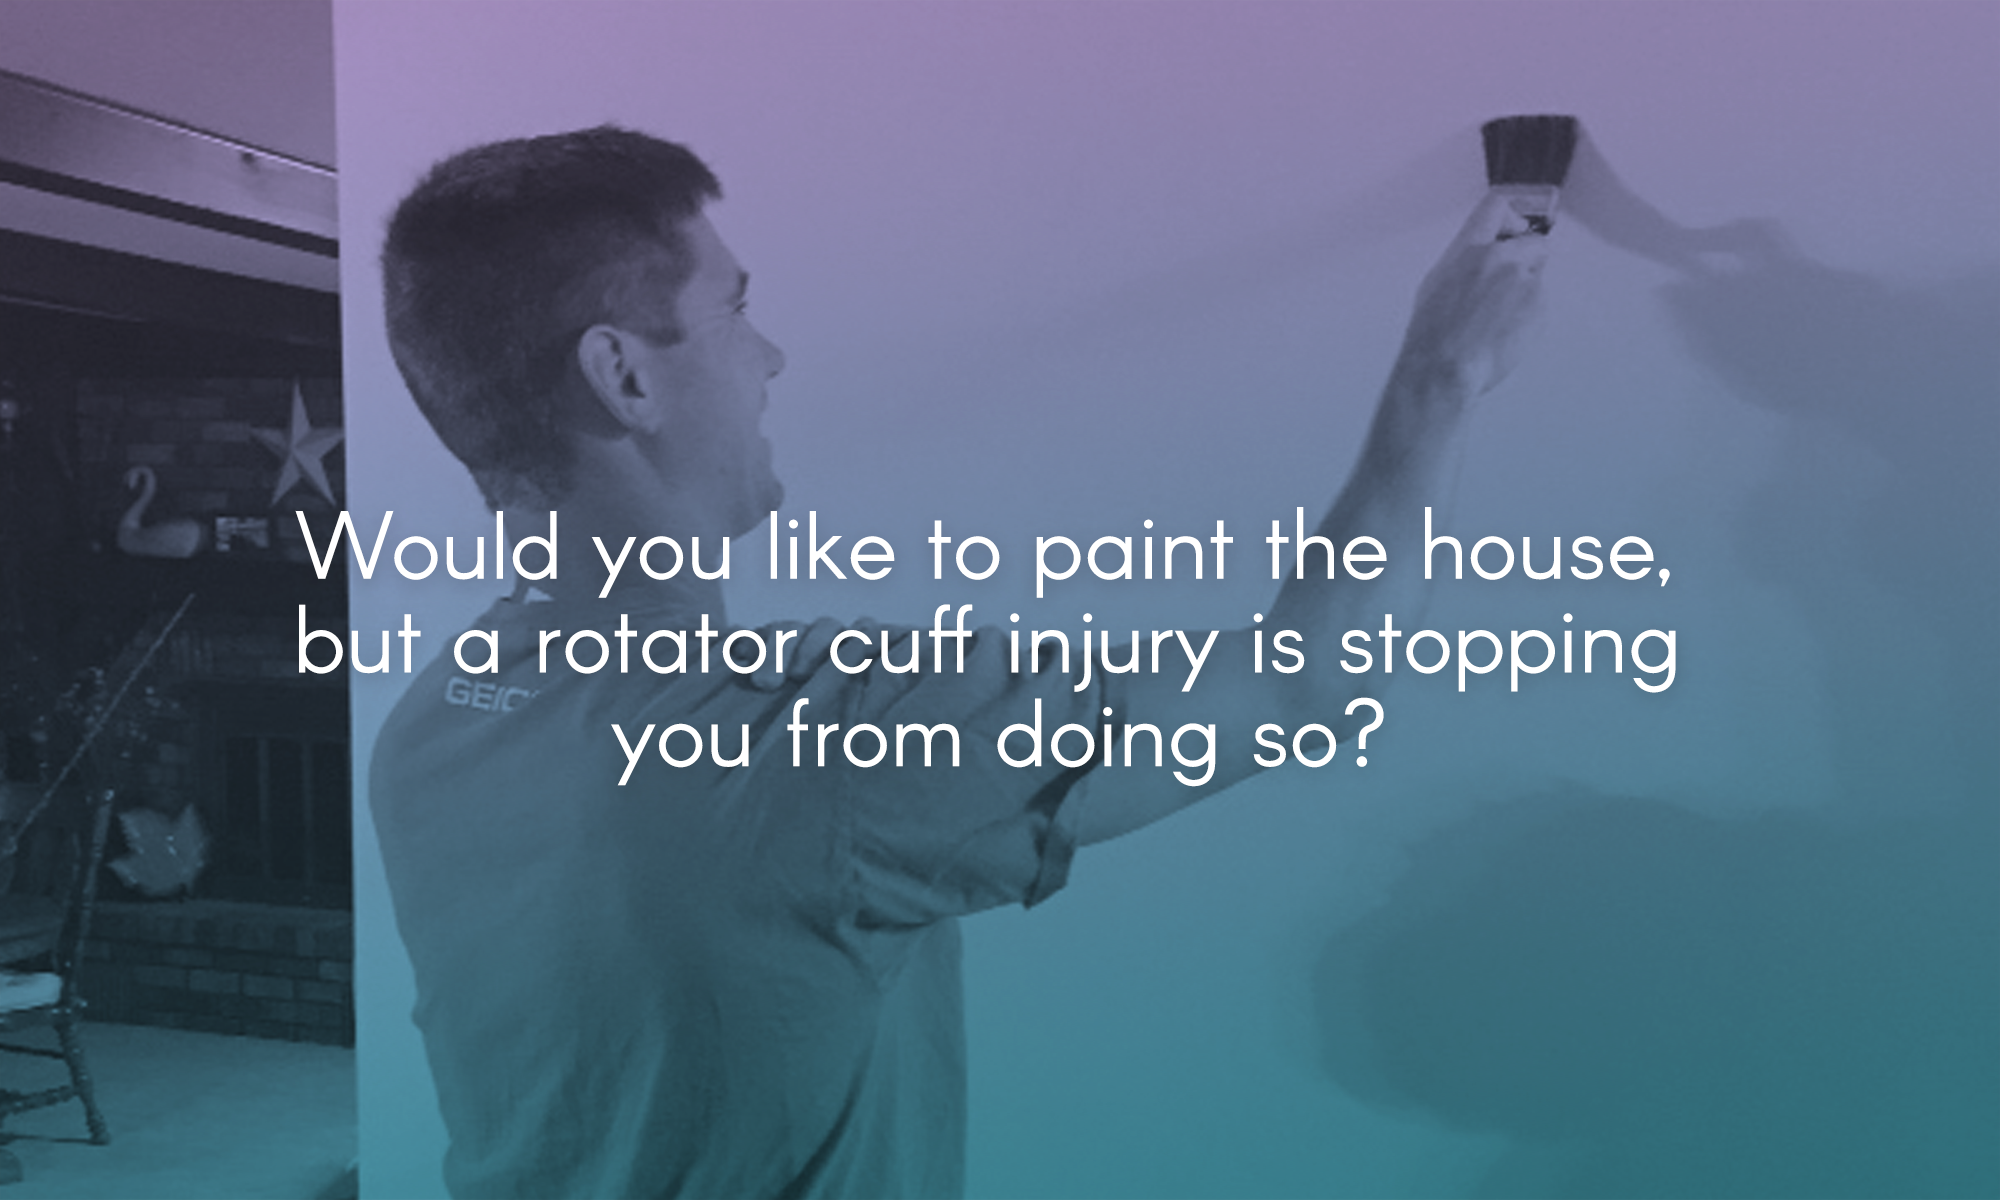 Would you like to paint the house, but a rotator cuff injury is stopping you from doing so?